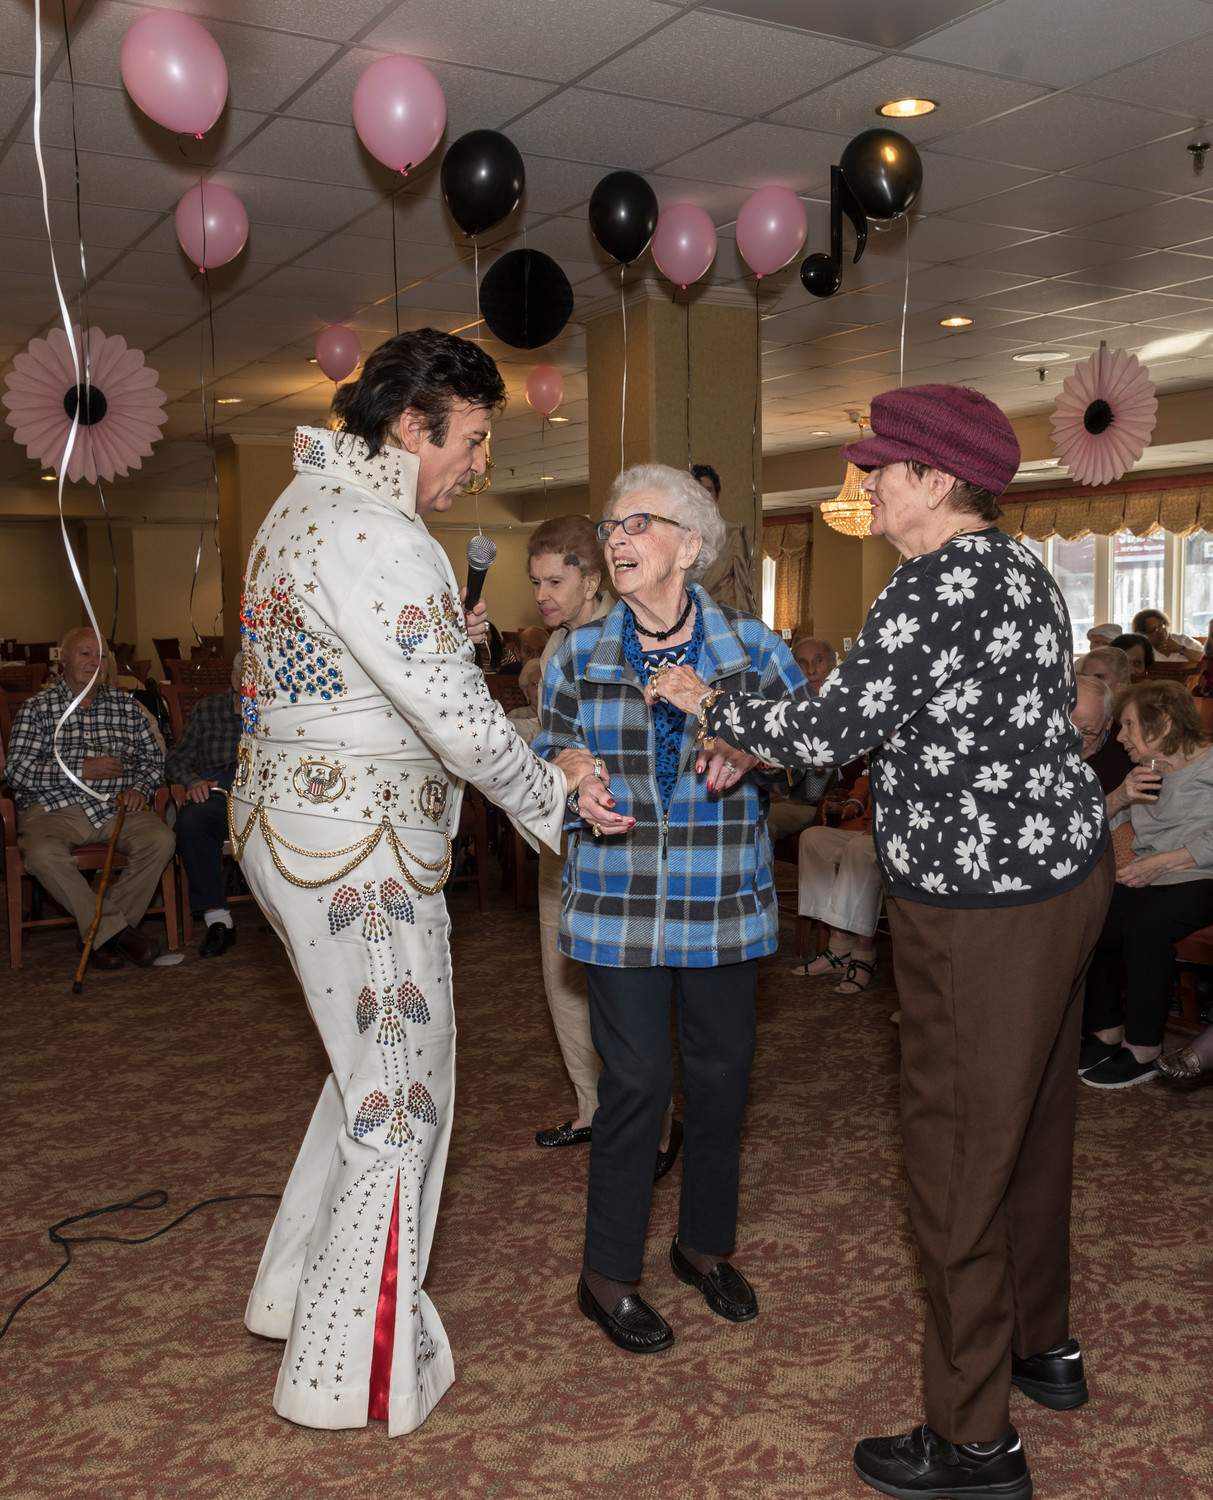 Irene Guardio, center, and Joyce Geurdes dance under a canopy of pink and black balloons with the King of rock 'n' roll.